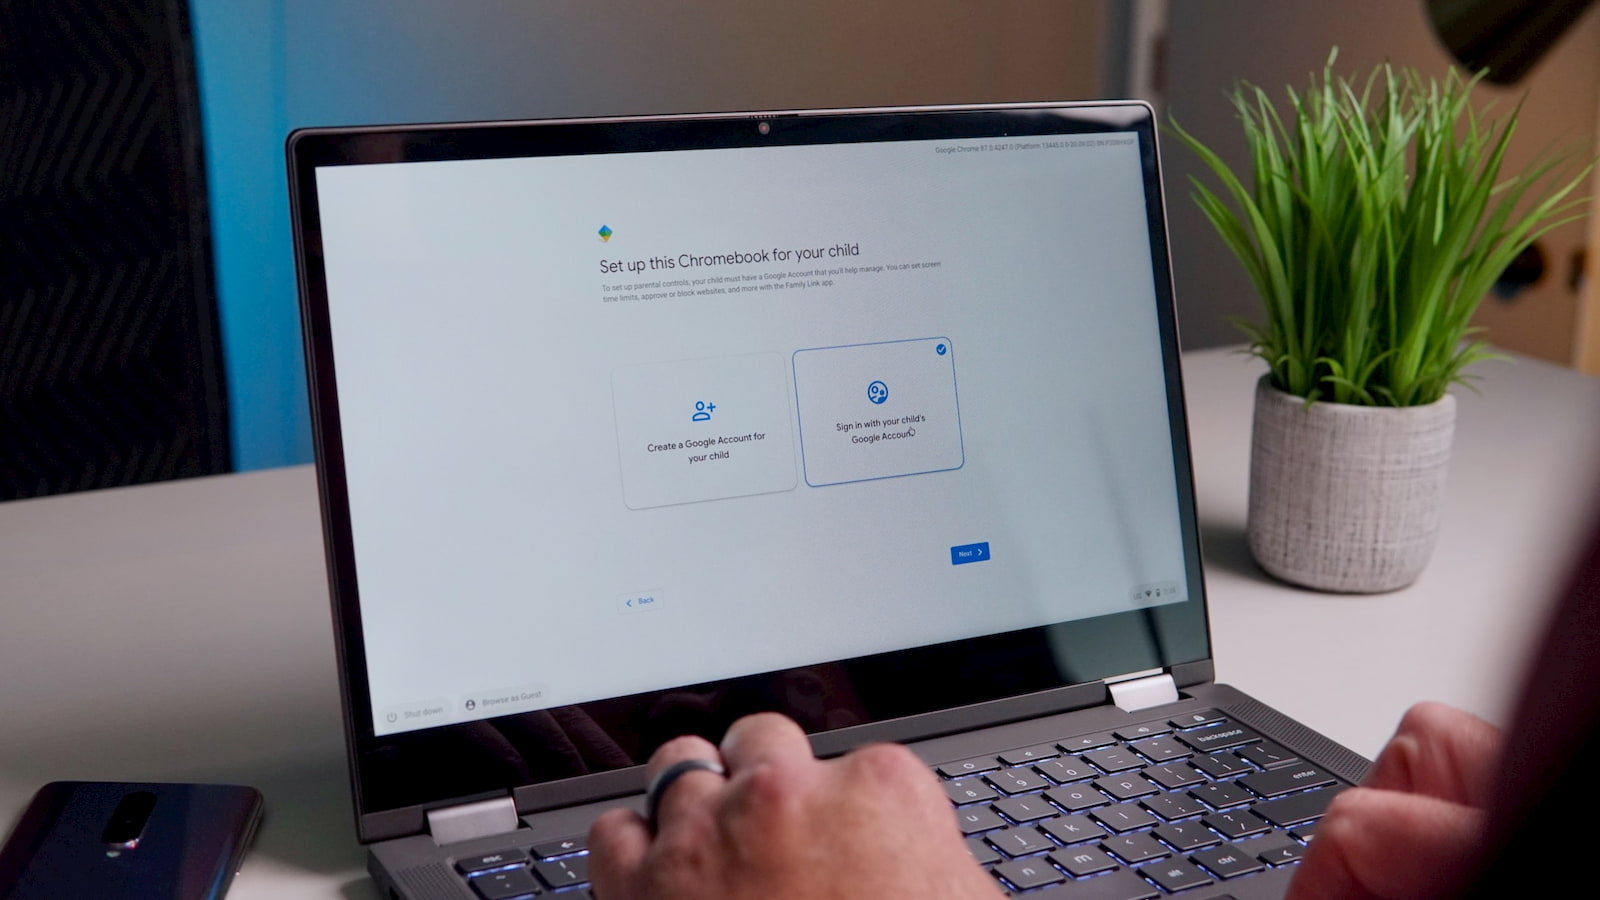 Chromebooks are getting a radical update to the setup process [VIDEO]